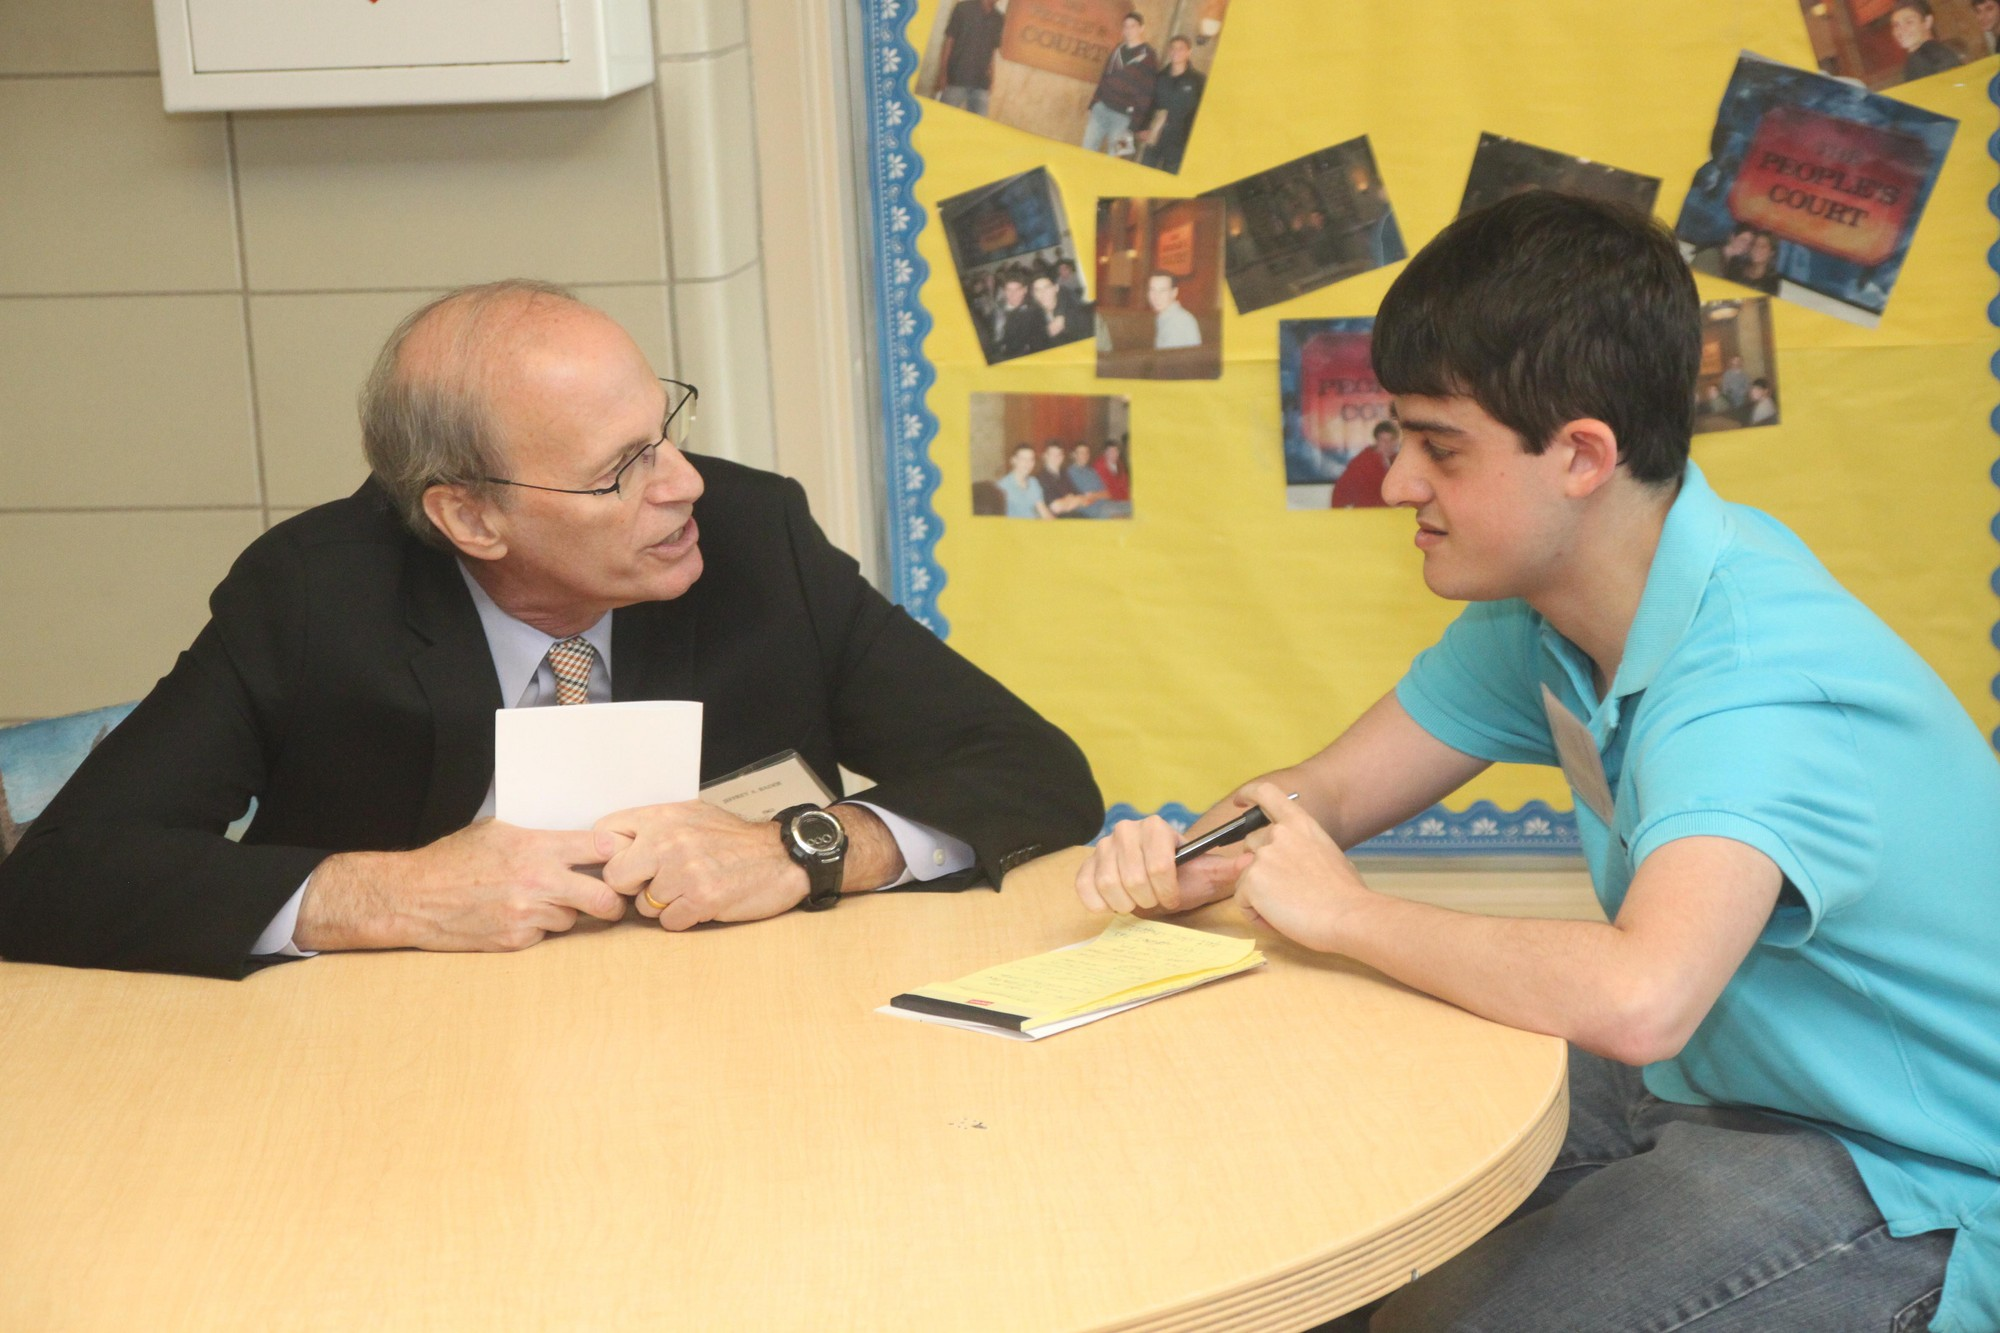 Honoree Jeffrey Bader is interviewed by Hewlett High Spectrum newspaper reporter Michael Green.